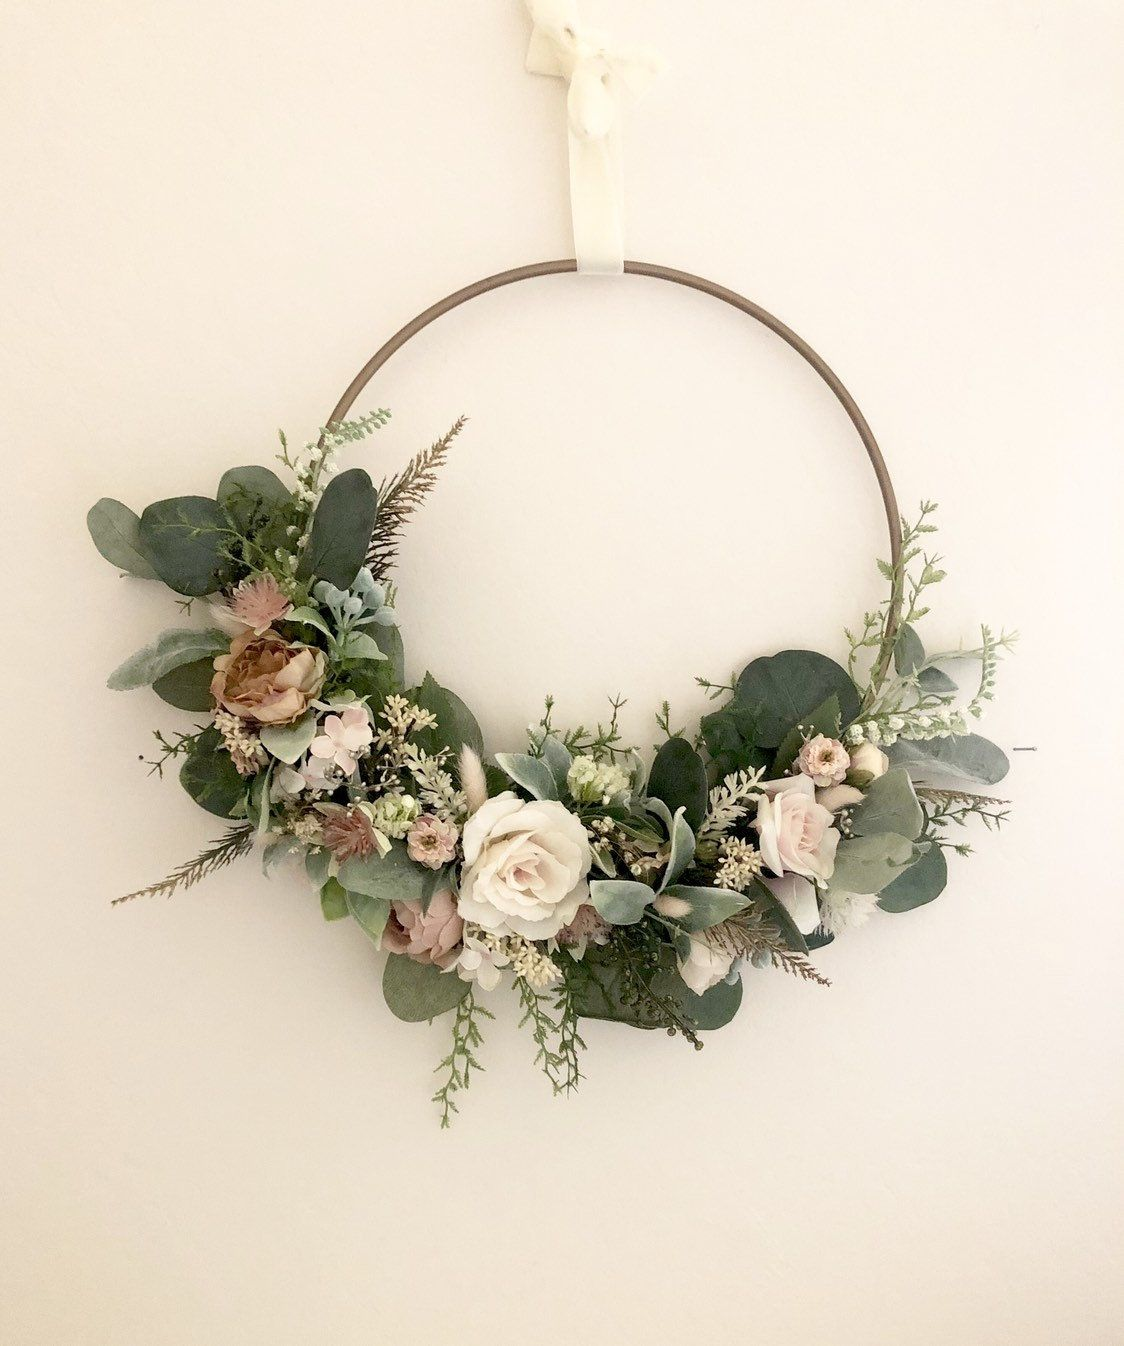 Blush Hoop Wreath Modern Wreath Nursery Wall Decor Floral Wall Decor Wedding Hoop Wreath Wedding Floral Wall Decor Dried Flower Wreaths Wreaths